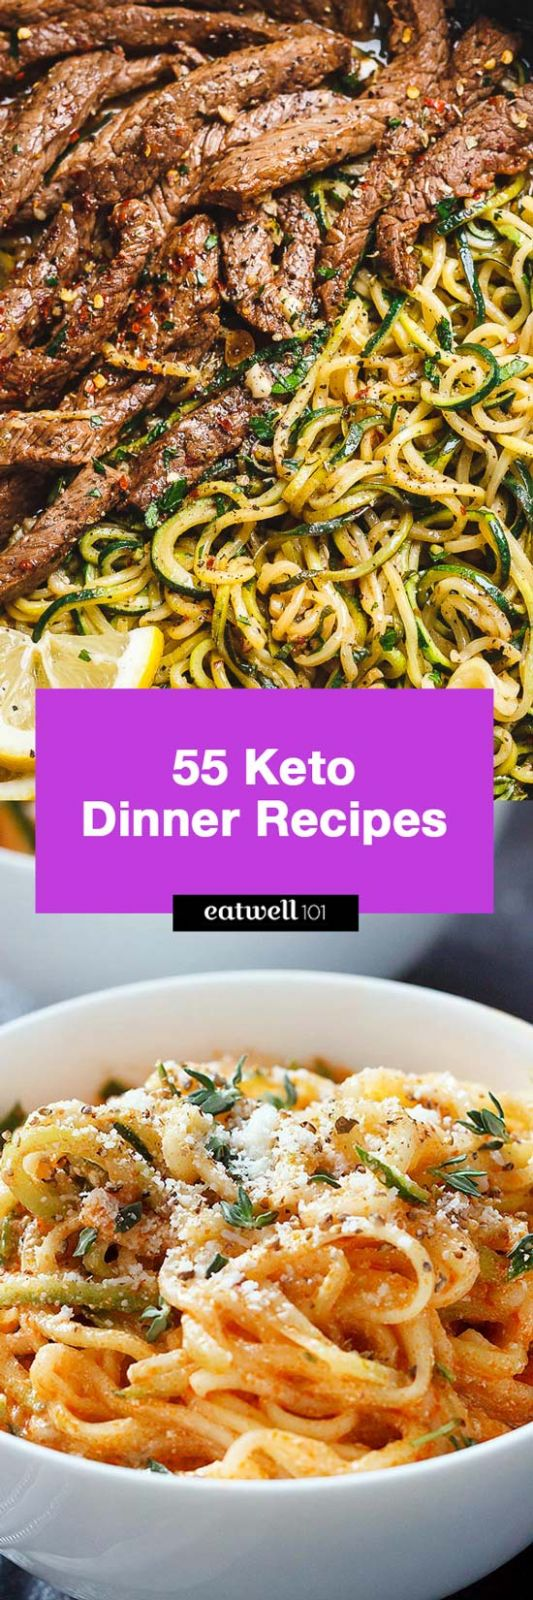 Easy Keto Dinner Recipes – 12+ Quick Keto Dinner ideas for Keto ...